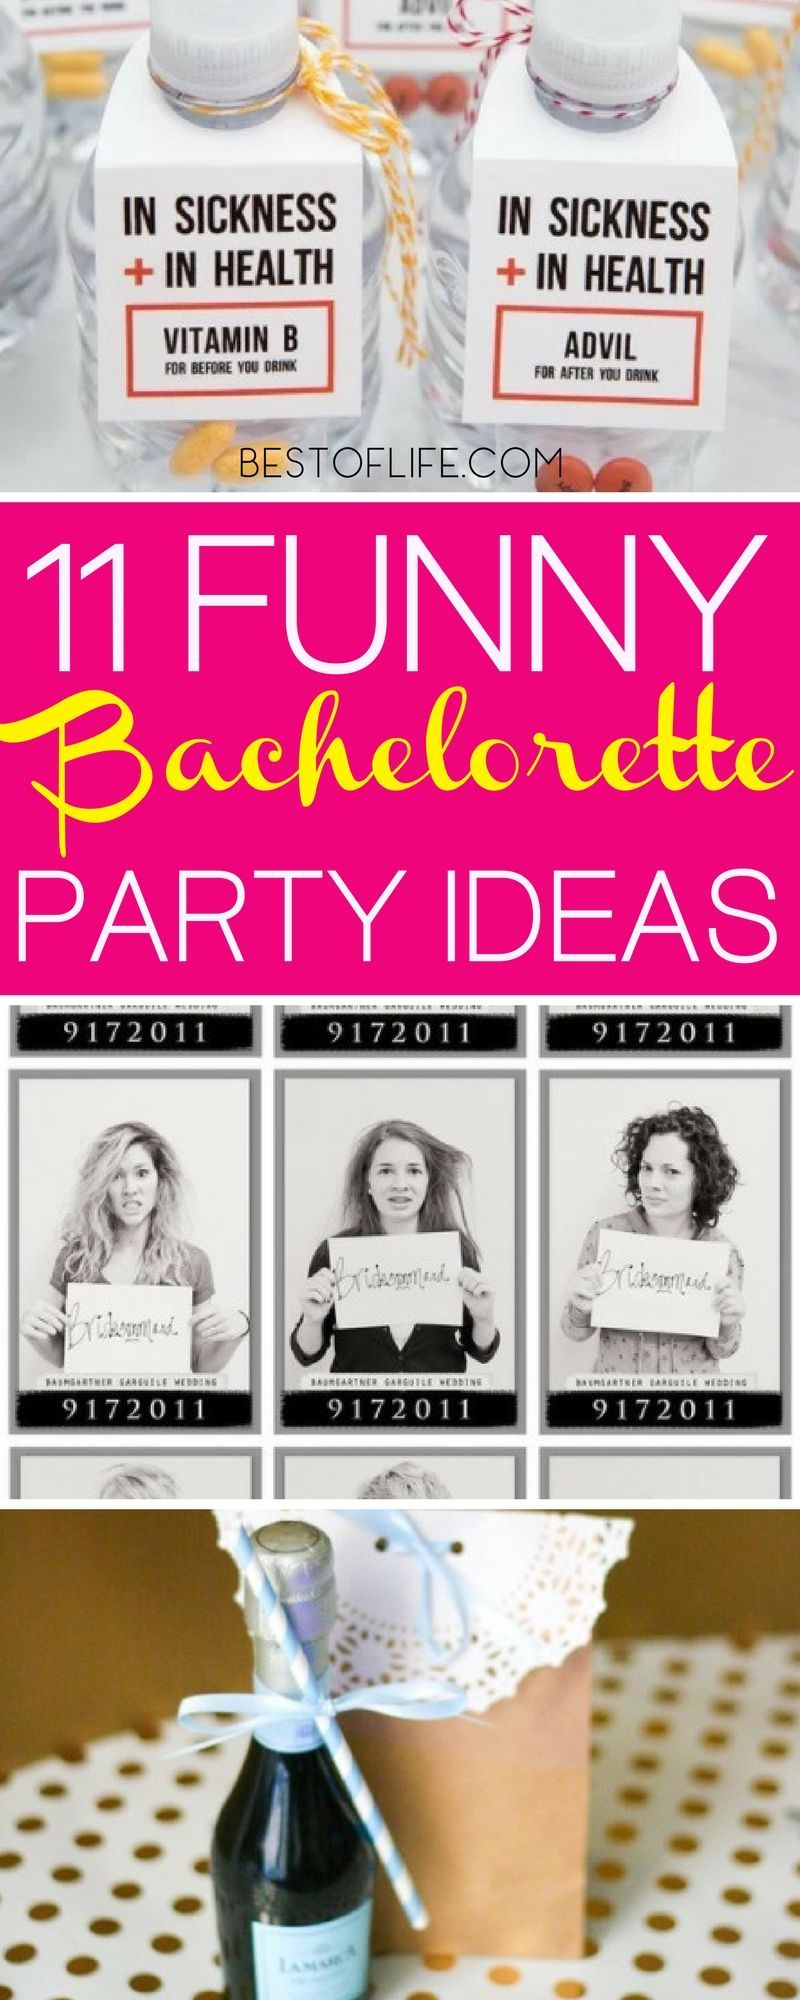 11 Funny Bachelorette Party Ideas And Games Bachelorette Party Funny Bachelorette Party Games Funny Clean Bachelorette Party